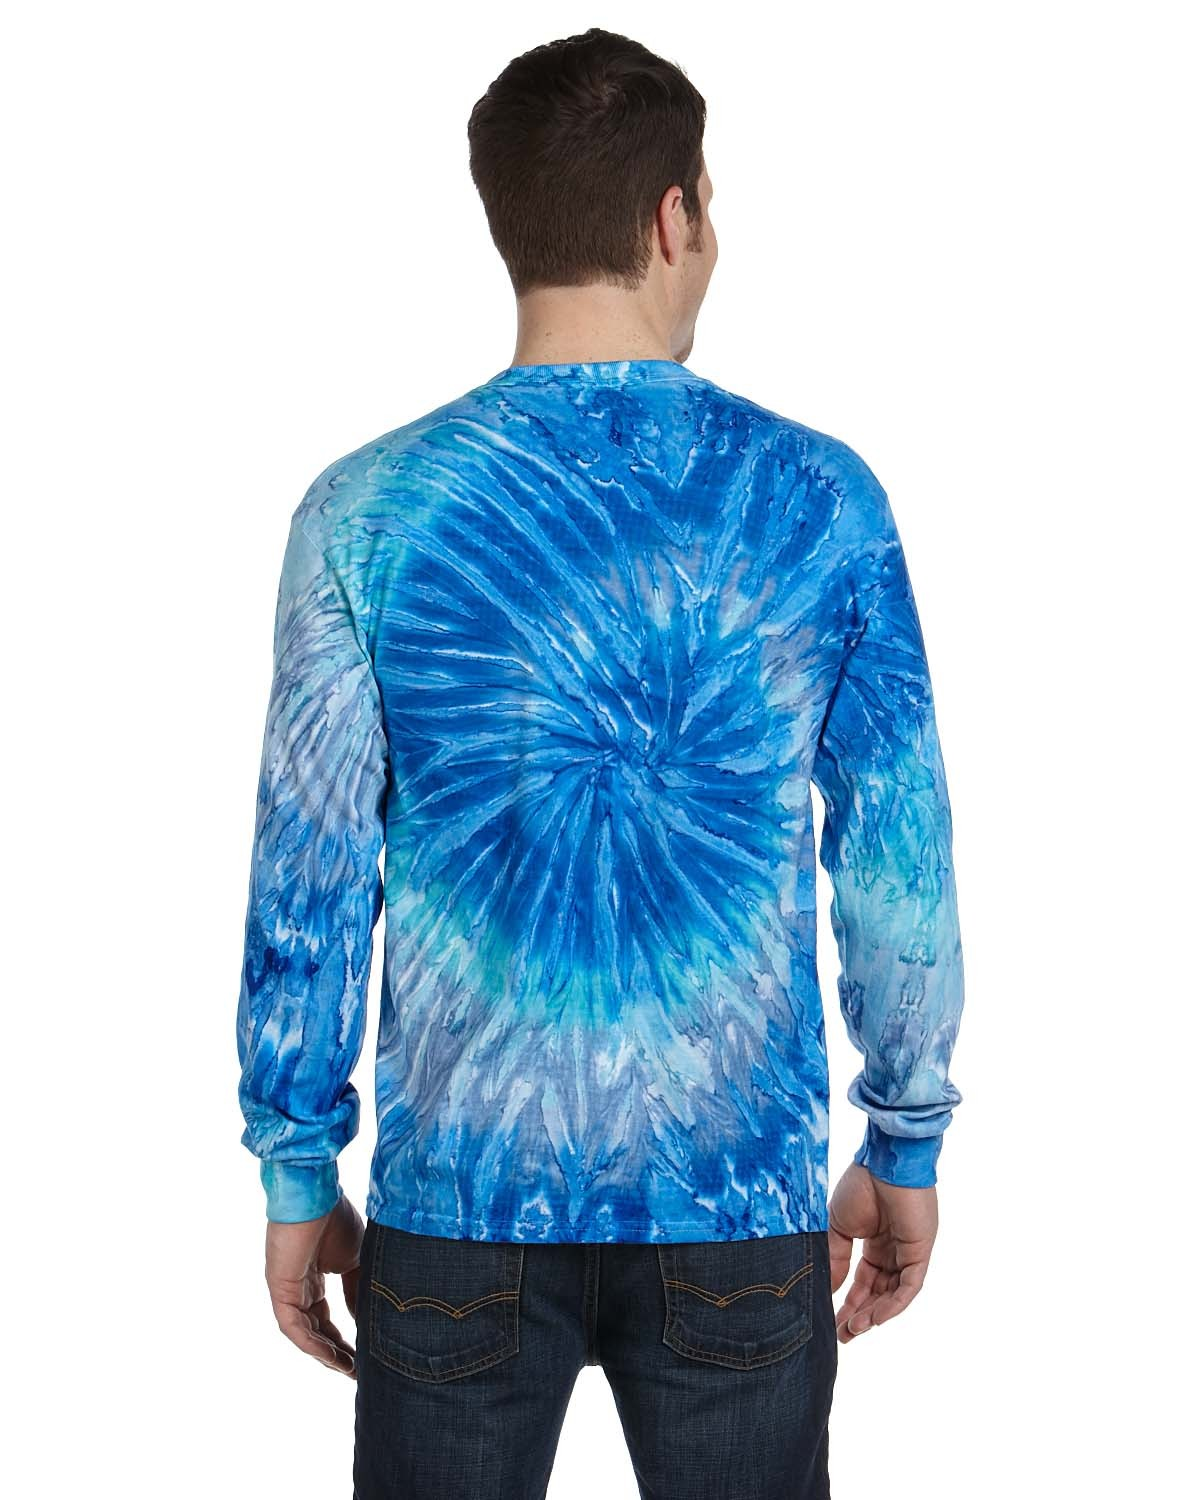 CD2000 Tie-Dye BLUE JERRY